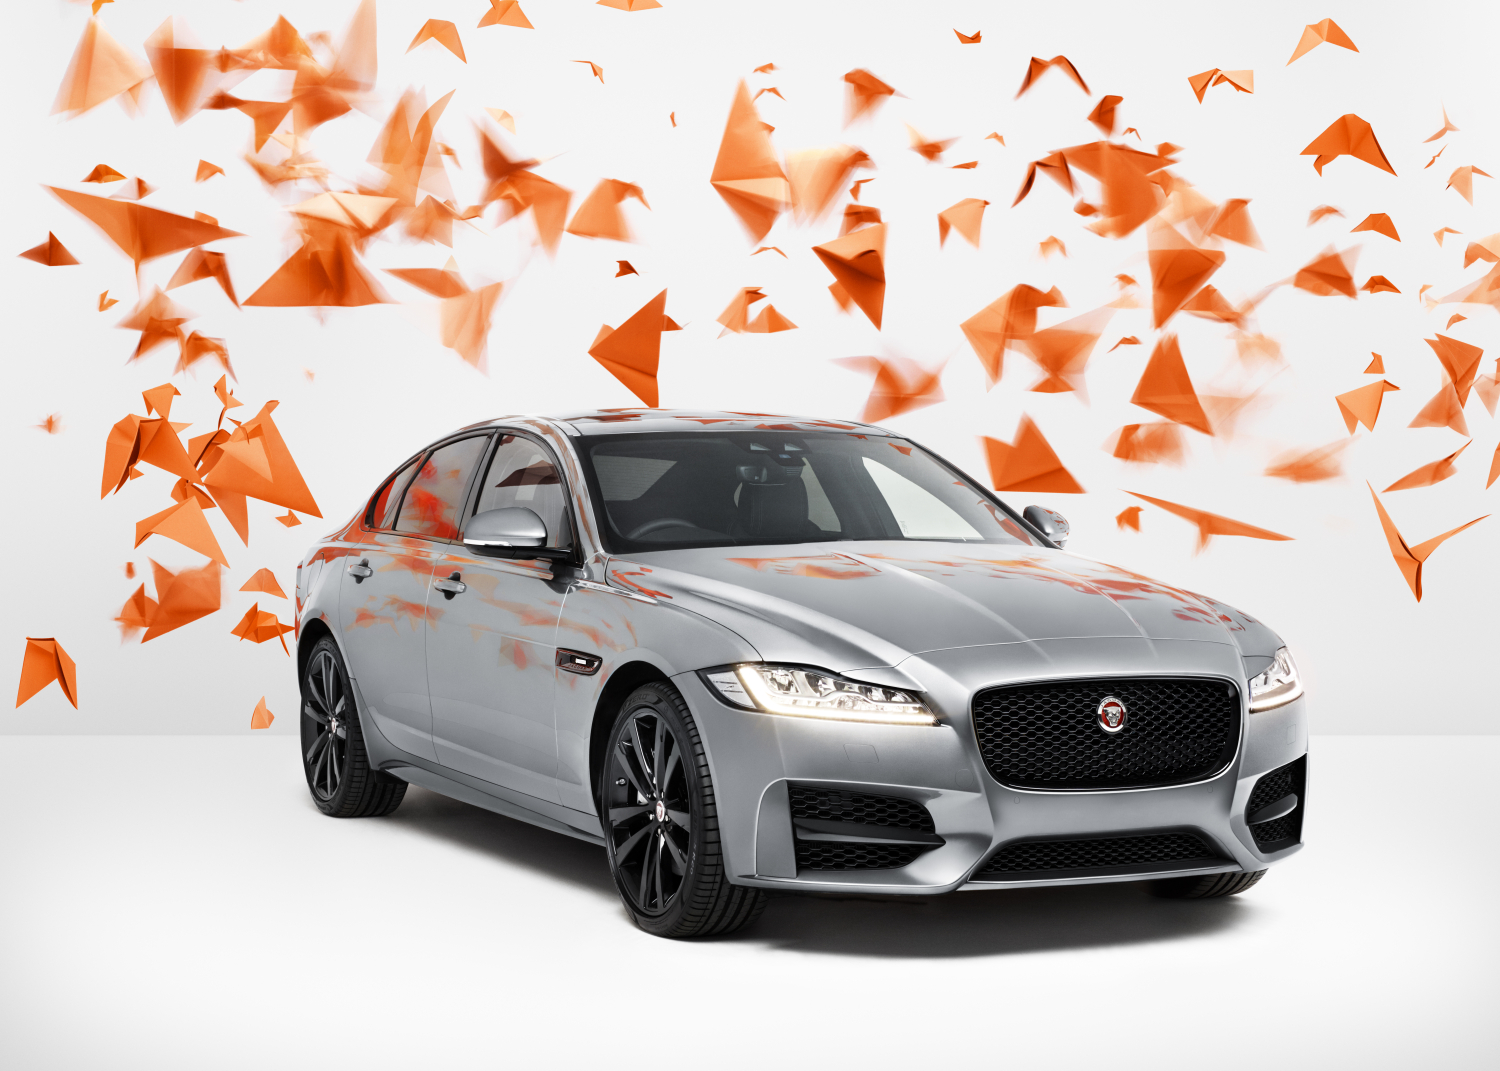 FLYING HIGH - JAGUAR AND PHOTOGRAPHER RANKIN COLLABORATE TO CREATE STUNNING NEW ART SHOWCASING THE XF